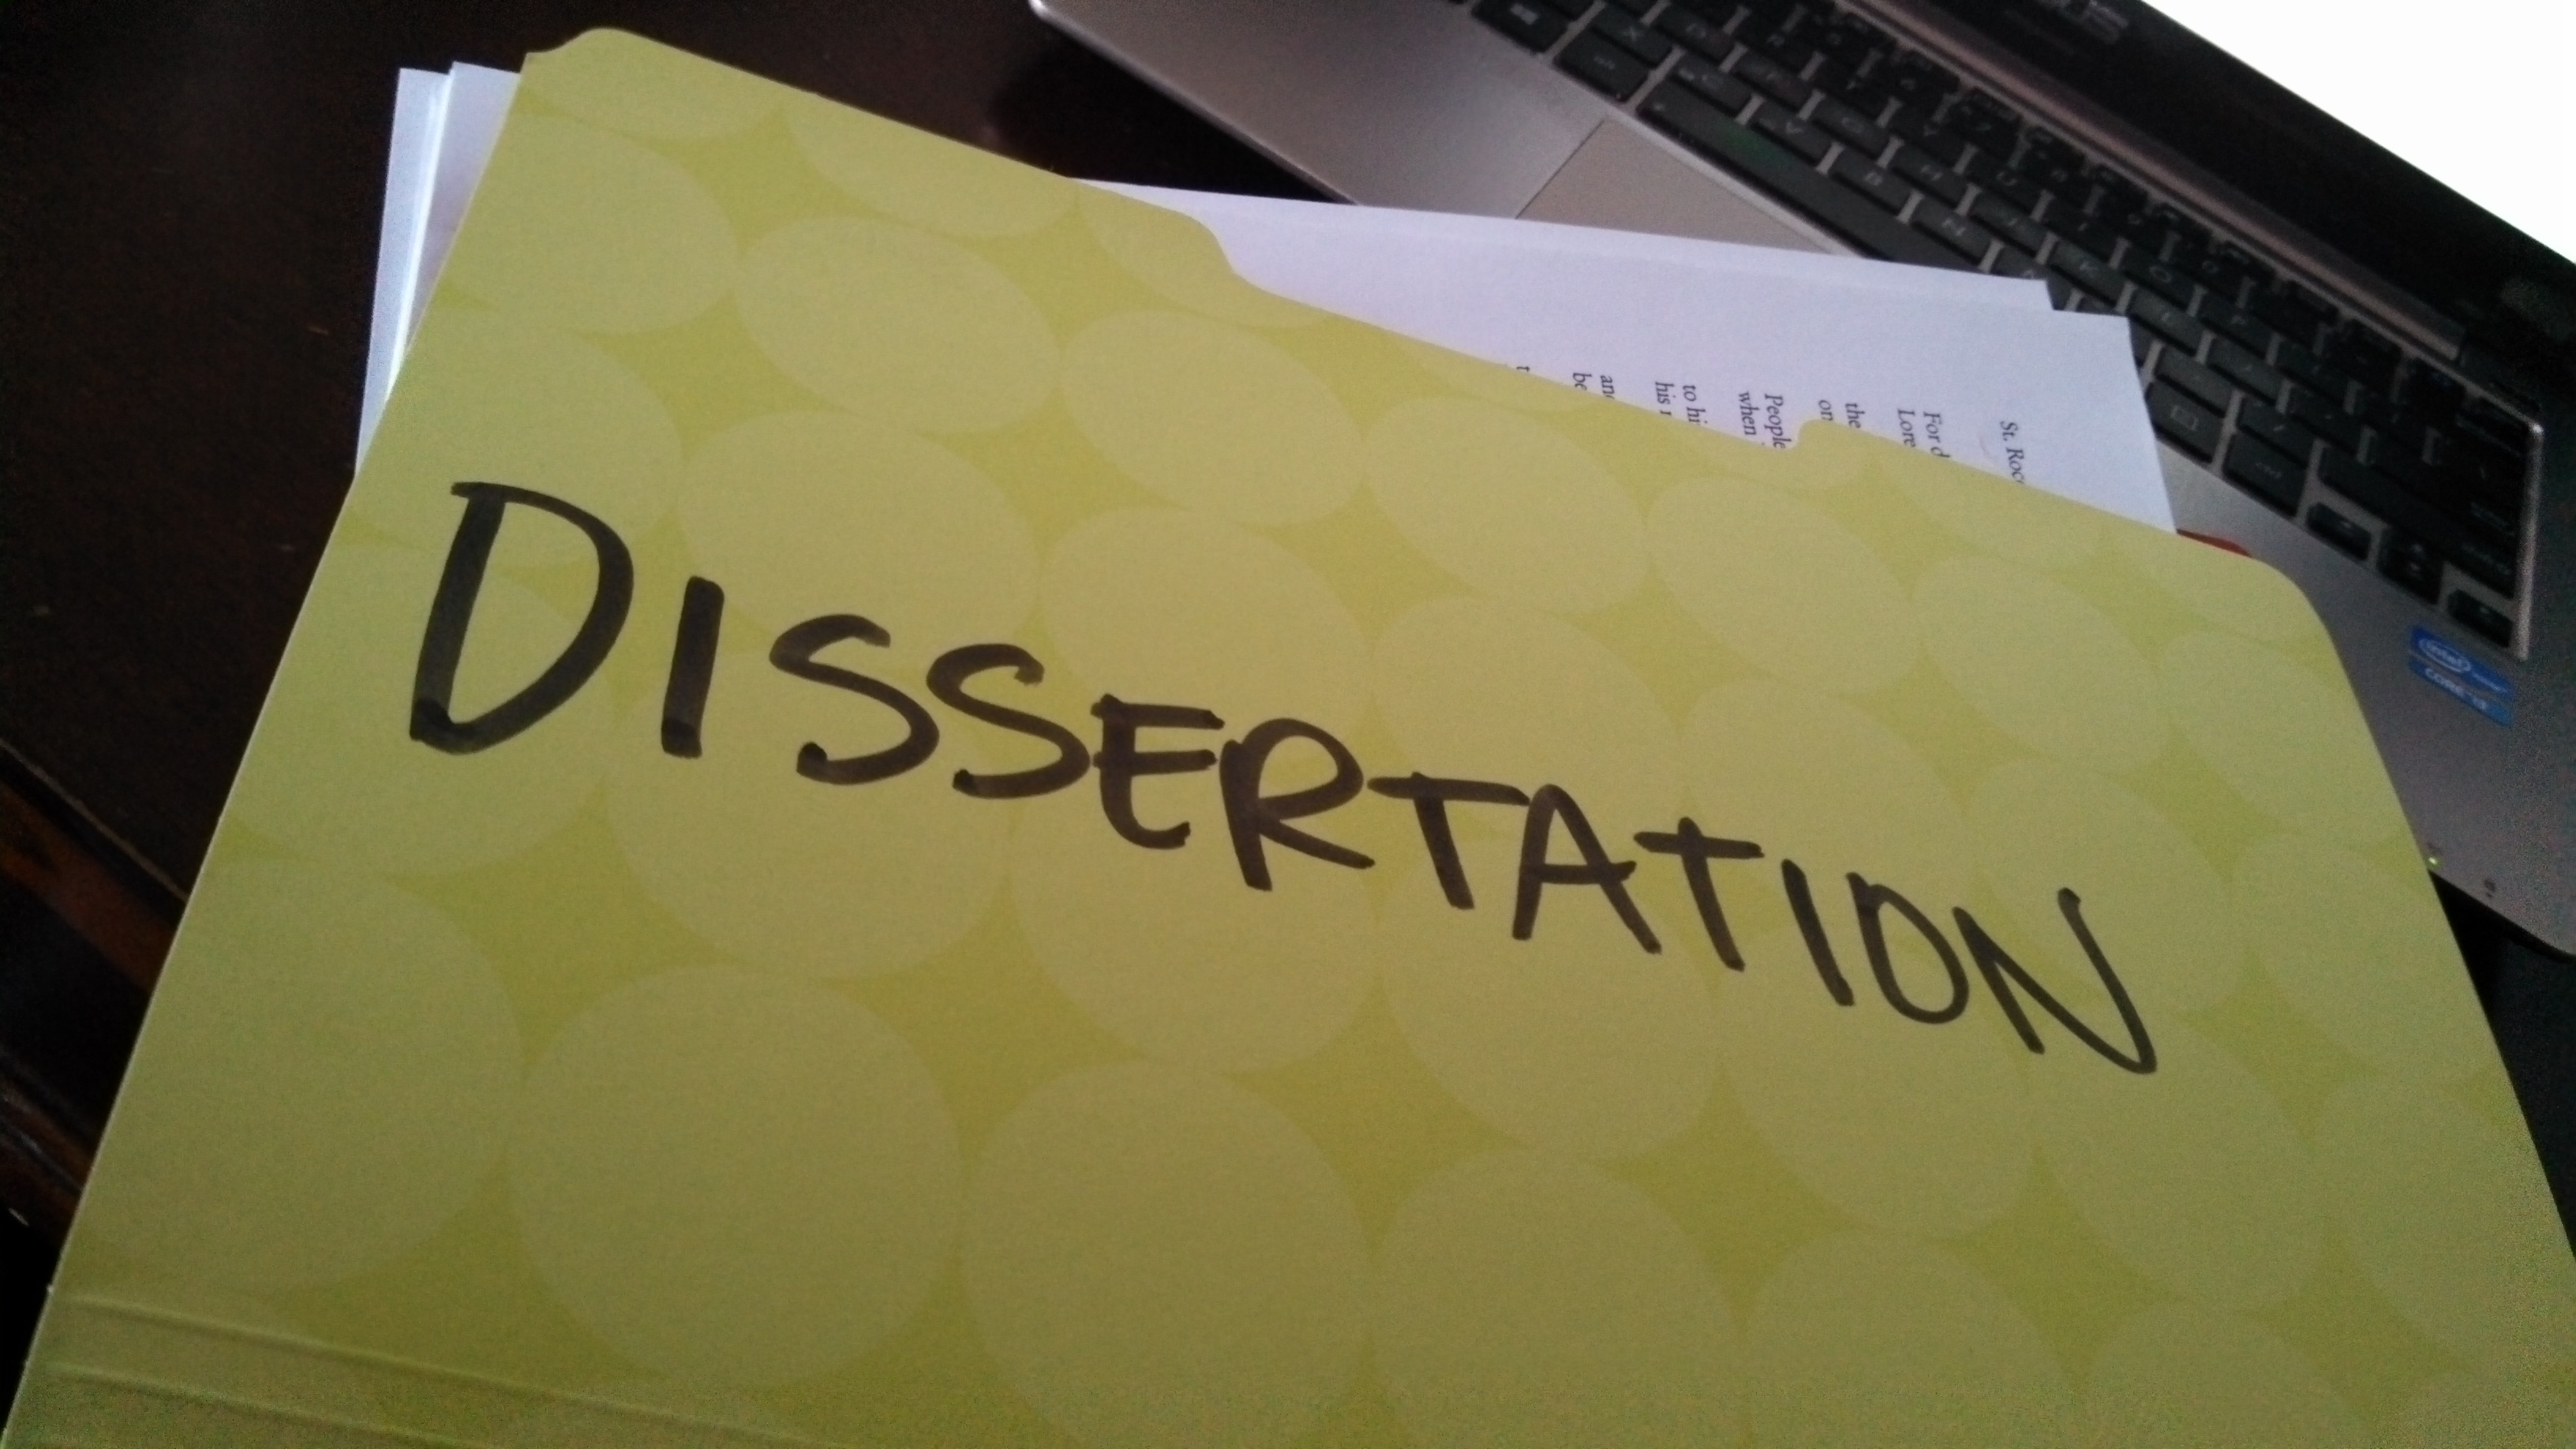 Dissertations and theses